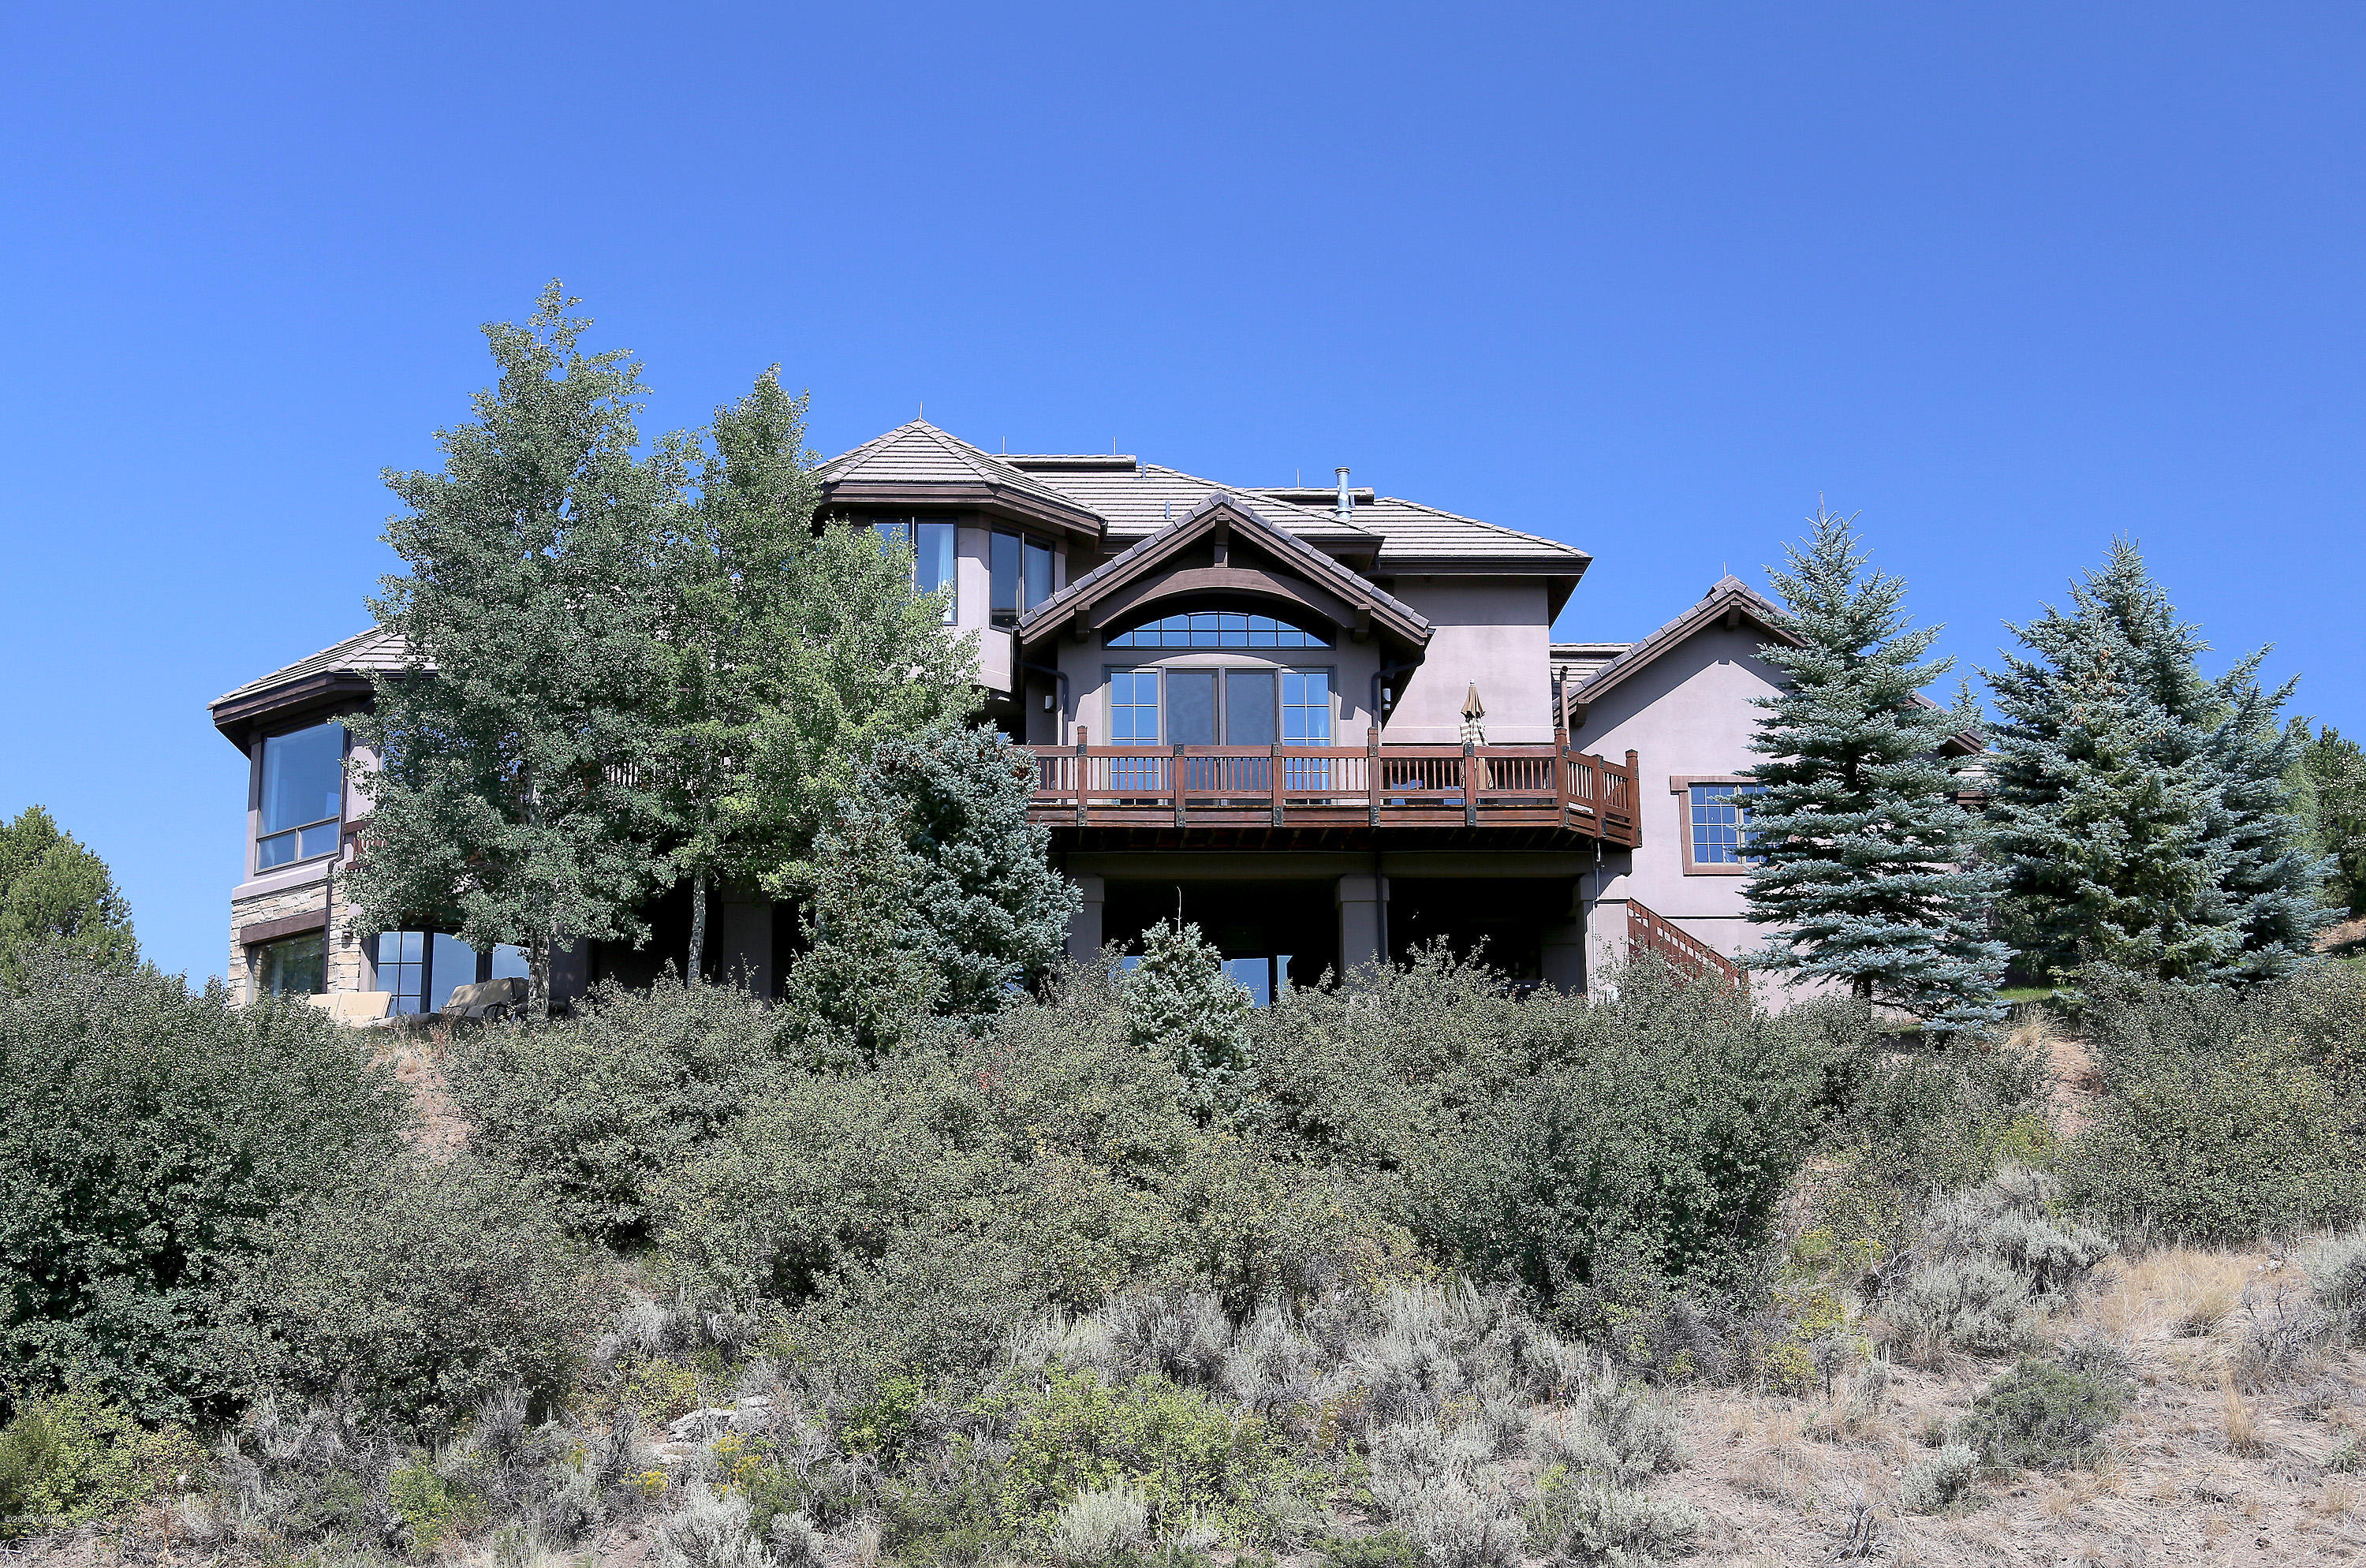 This spectacular Mountain Contemporary residence has stunning 360 degree views and beautiful high end handcrafted finishes. Gourmet kitchen with hearth room, private primary bedroom suite on it's own level, three additional en suite bedrooms, spacious family living areas, custom built study and second catering kitchen for entertaining. Large decks and patios create wonderful indoor/outdoor living. Quick access to Edwards and the Vail Valley, close to the Short Golf Course, Open Space with hiking trails and all the other Cordillera amenities make this a remarkable location to call home.